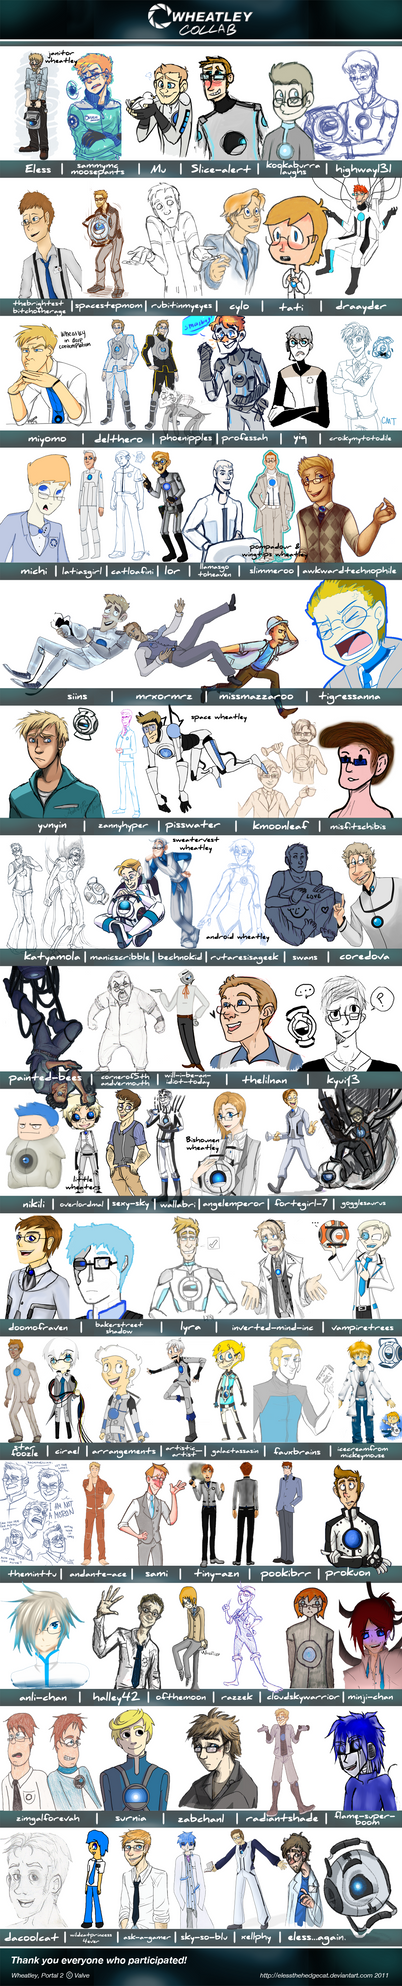 Wheatley collab - UPDATED by mmishee